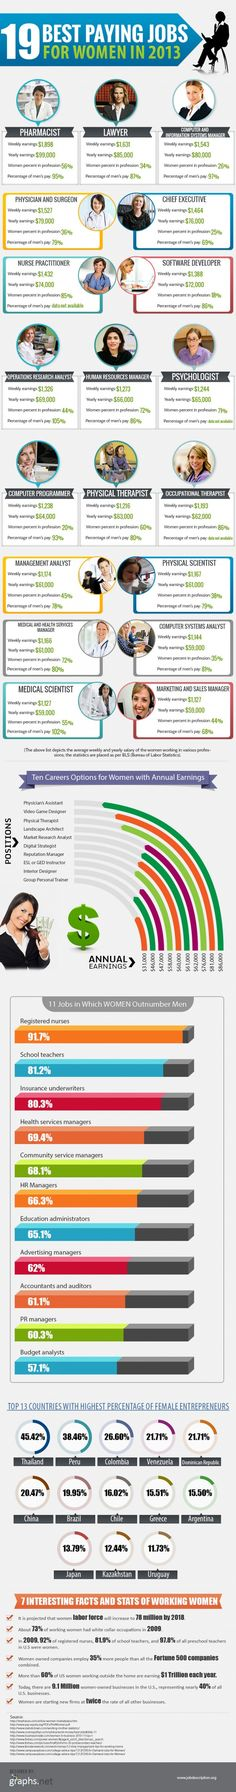 "19 Best Paying Jobs for Women in 2013 - Project Eve#INTERNACIONALIZACION""PYME""→http://ow.ly/oGwTJ"